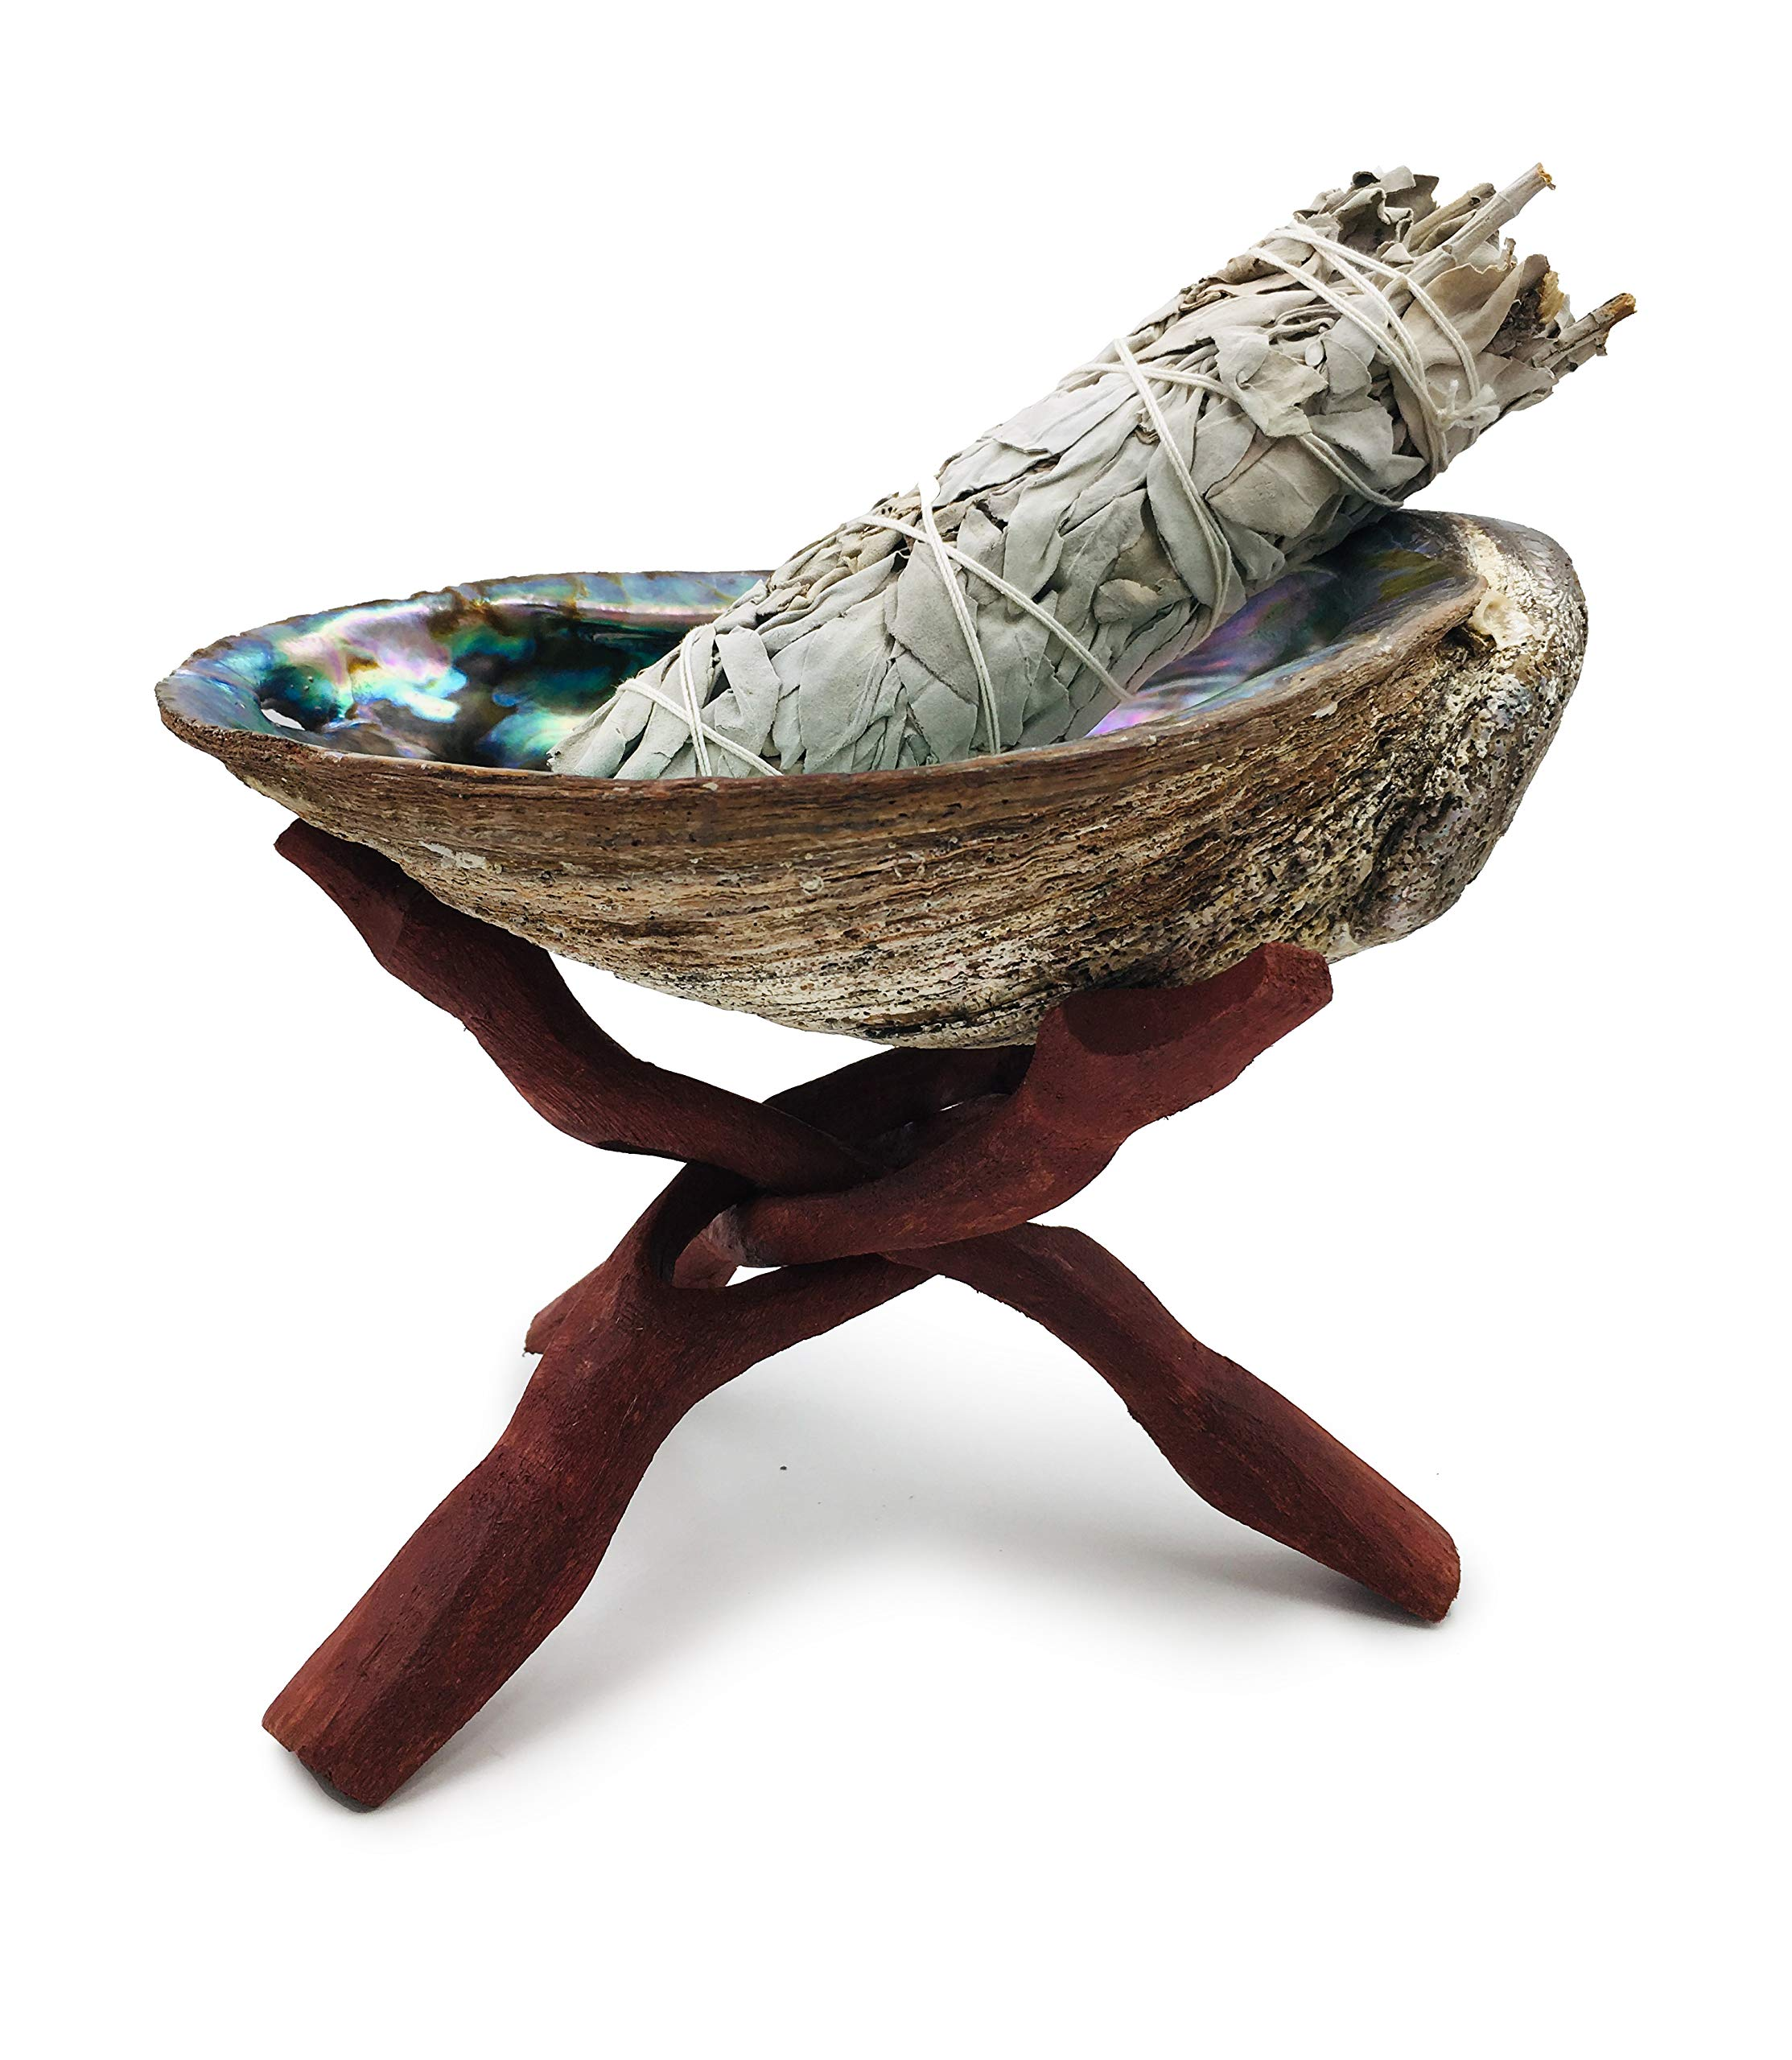 Alternative Imagination Premium, Extra Large 7 Inches (or More) Abalone Shell with Stained Wooden Tripod Stand and 1 California White Sage Smudge Sticks for Incense Burning, Home Fragrance by Alternative Imagination